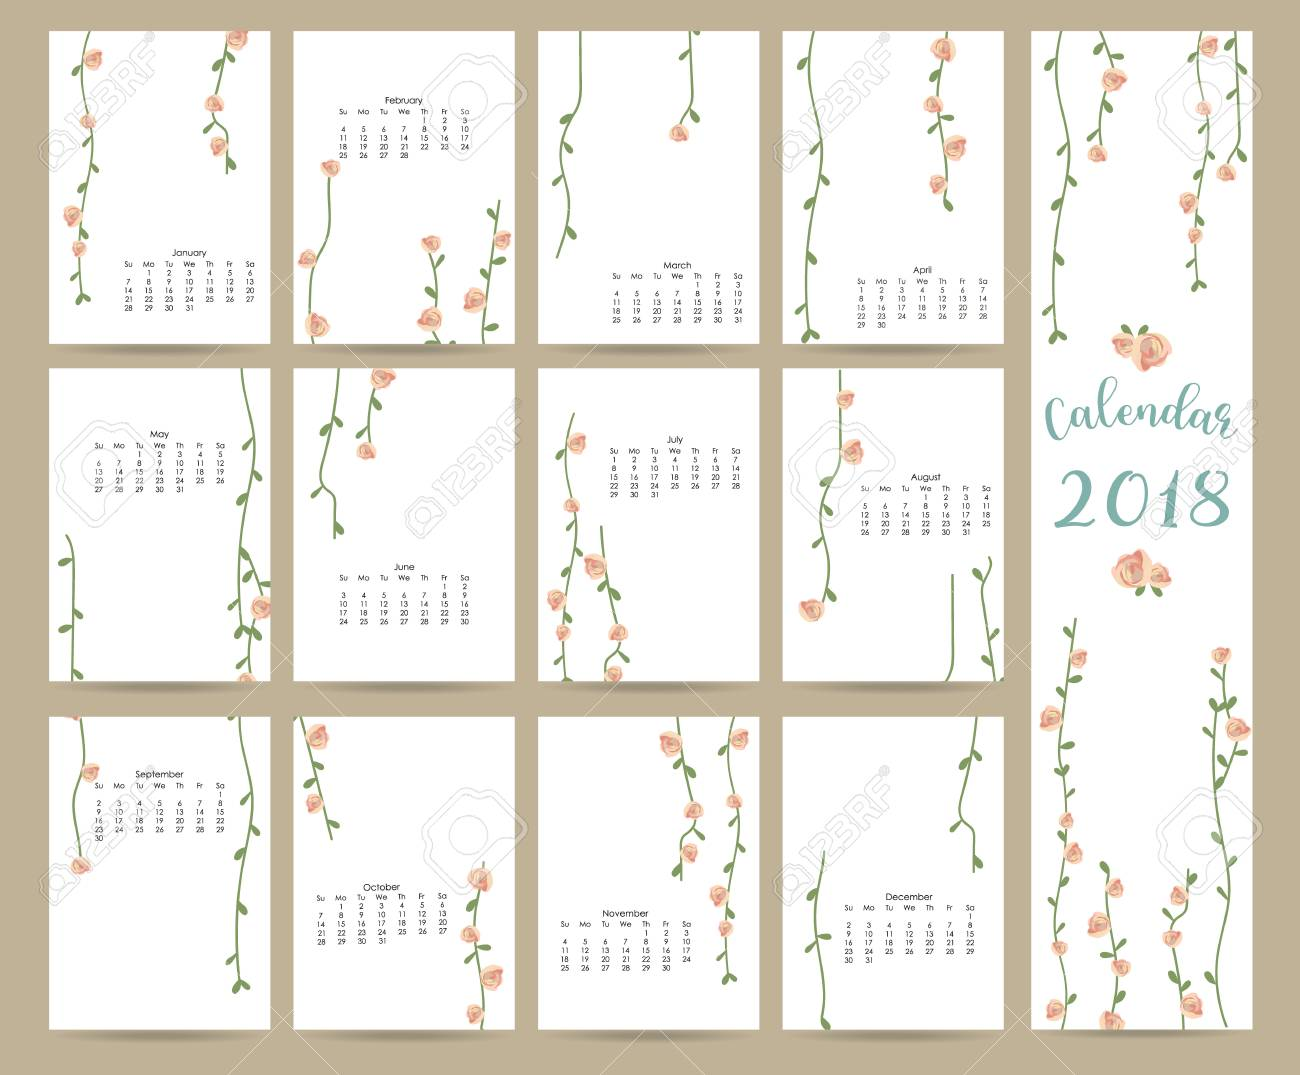 colorful cute monthly calendar 2018 with leaf and flowercan be used for web